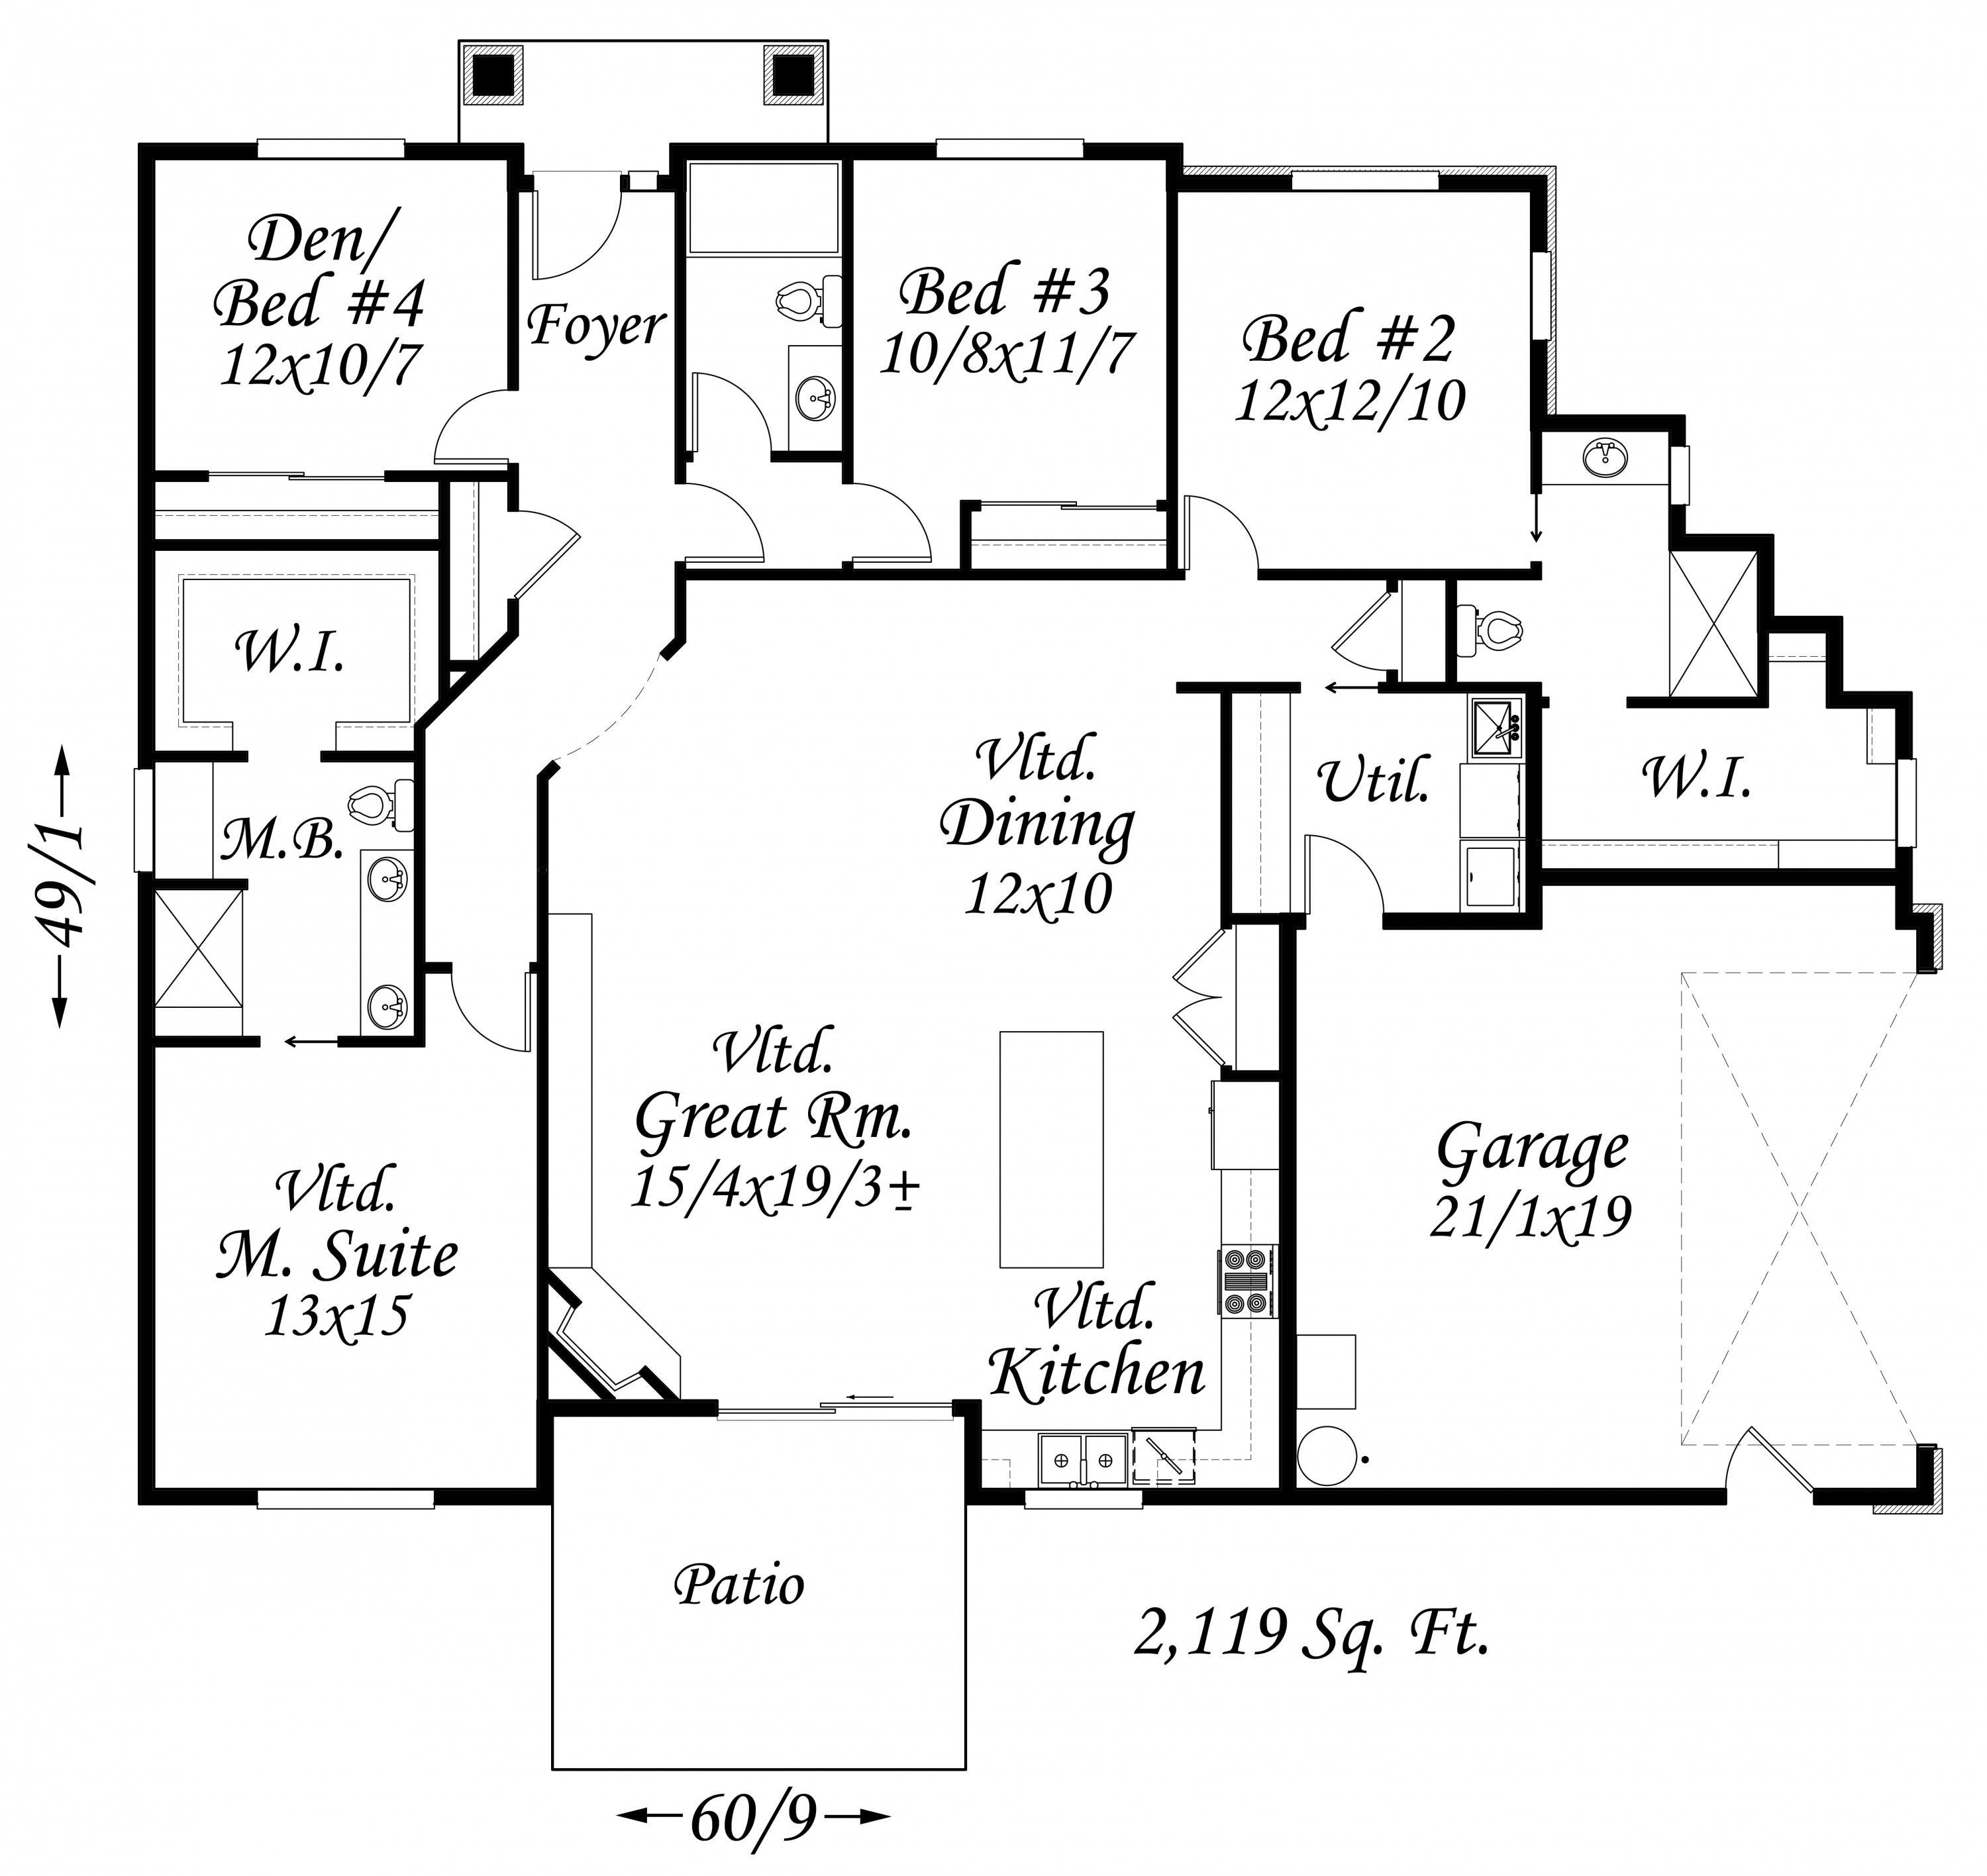 4500 Square Feet Tropical House On A Very Small Lot But: Transitional House Plans